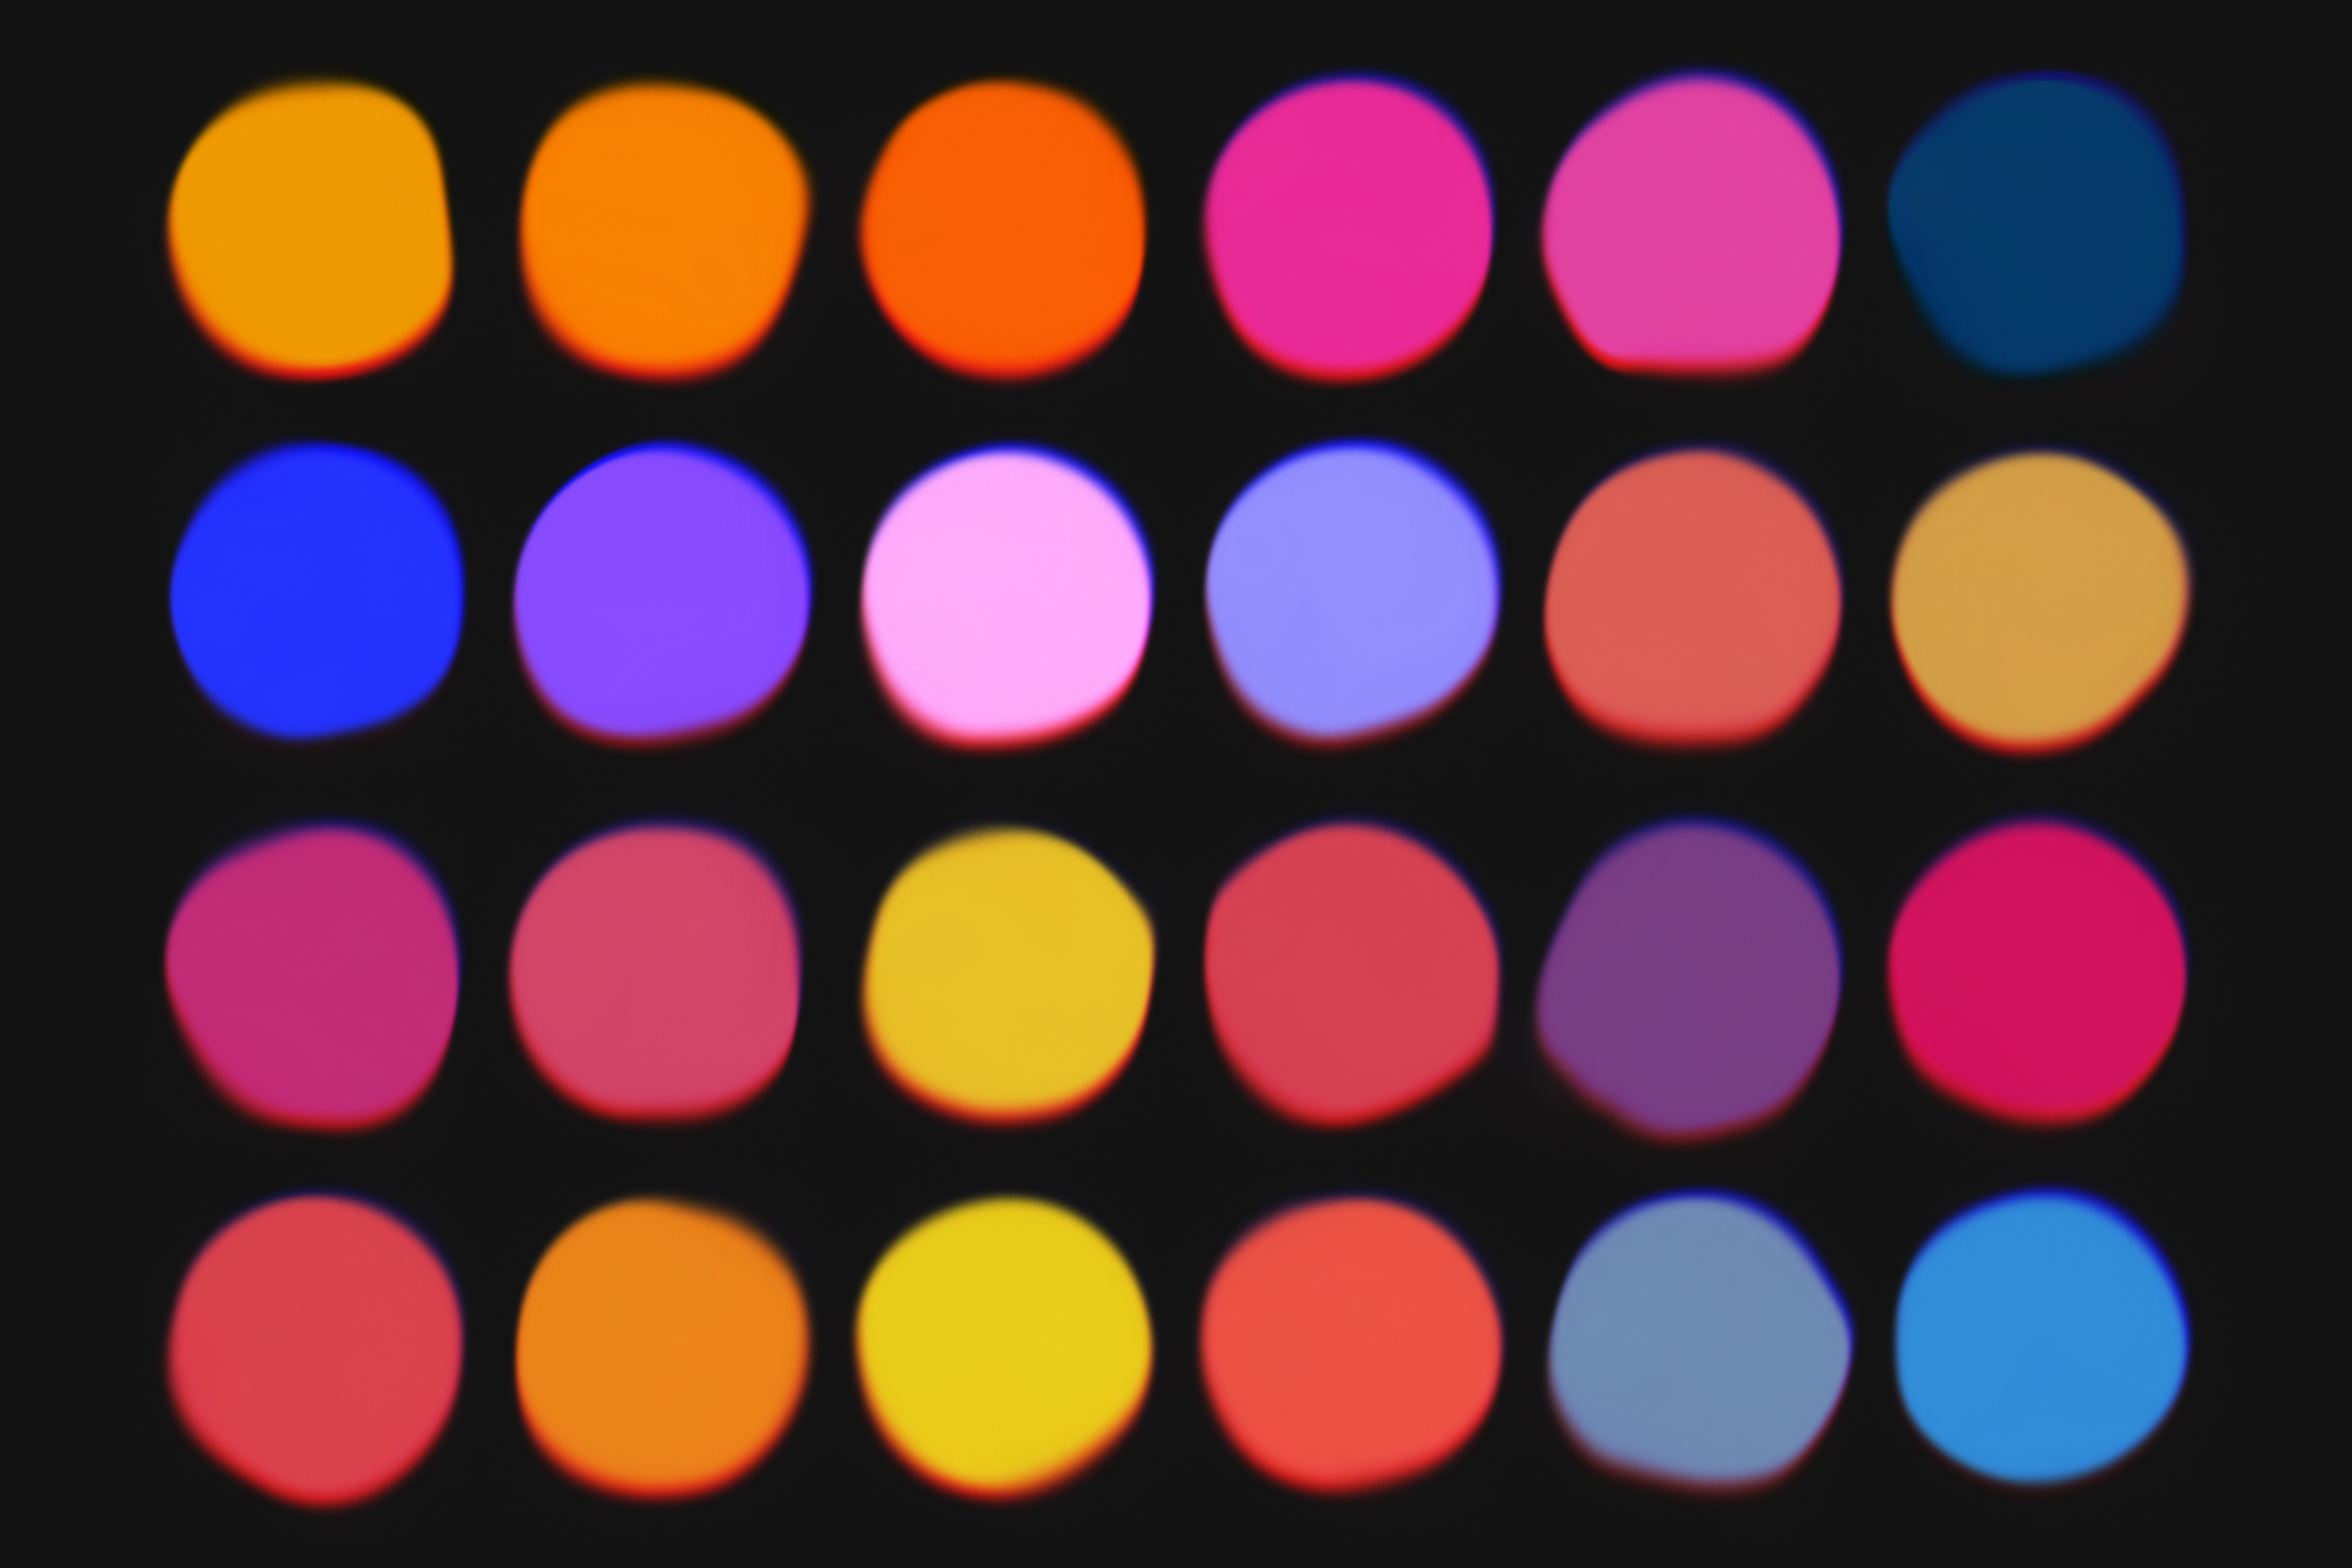 Vibrant - 8 Colors Schemes Pack example image 3